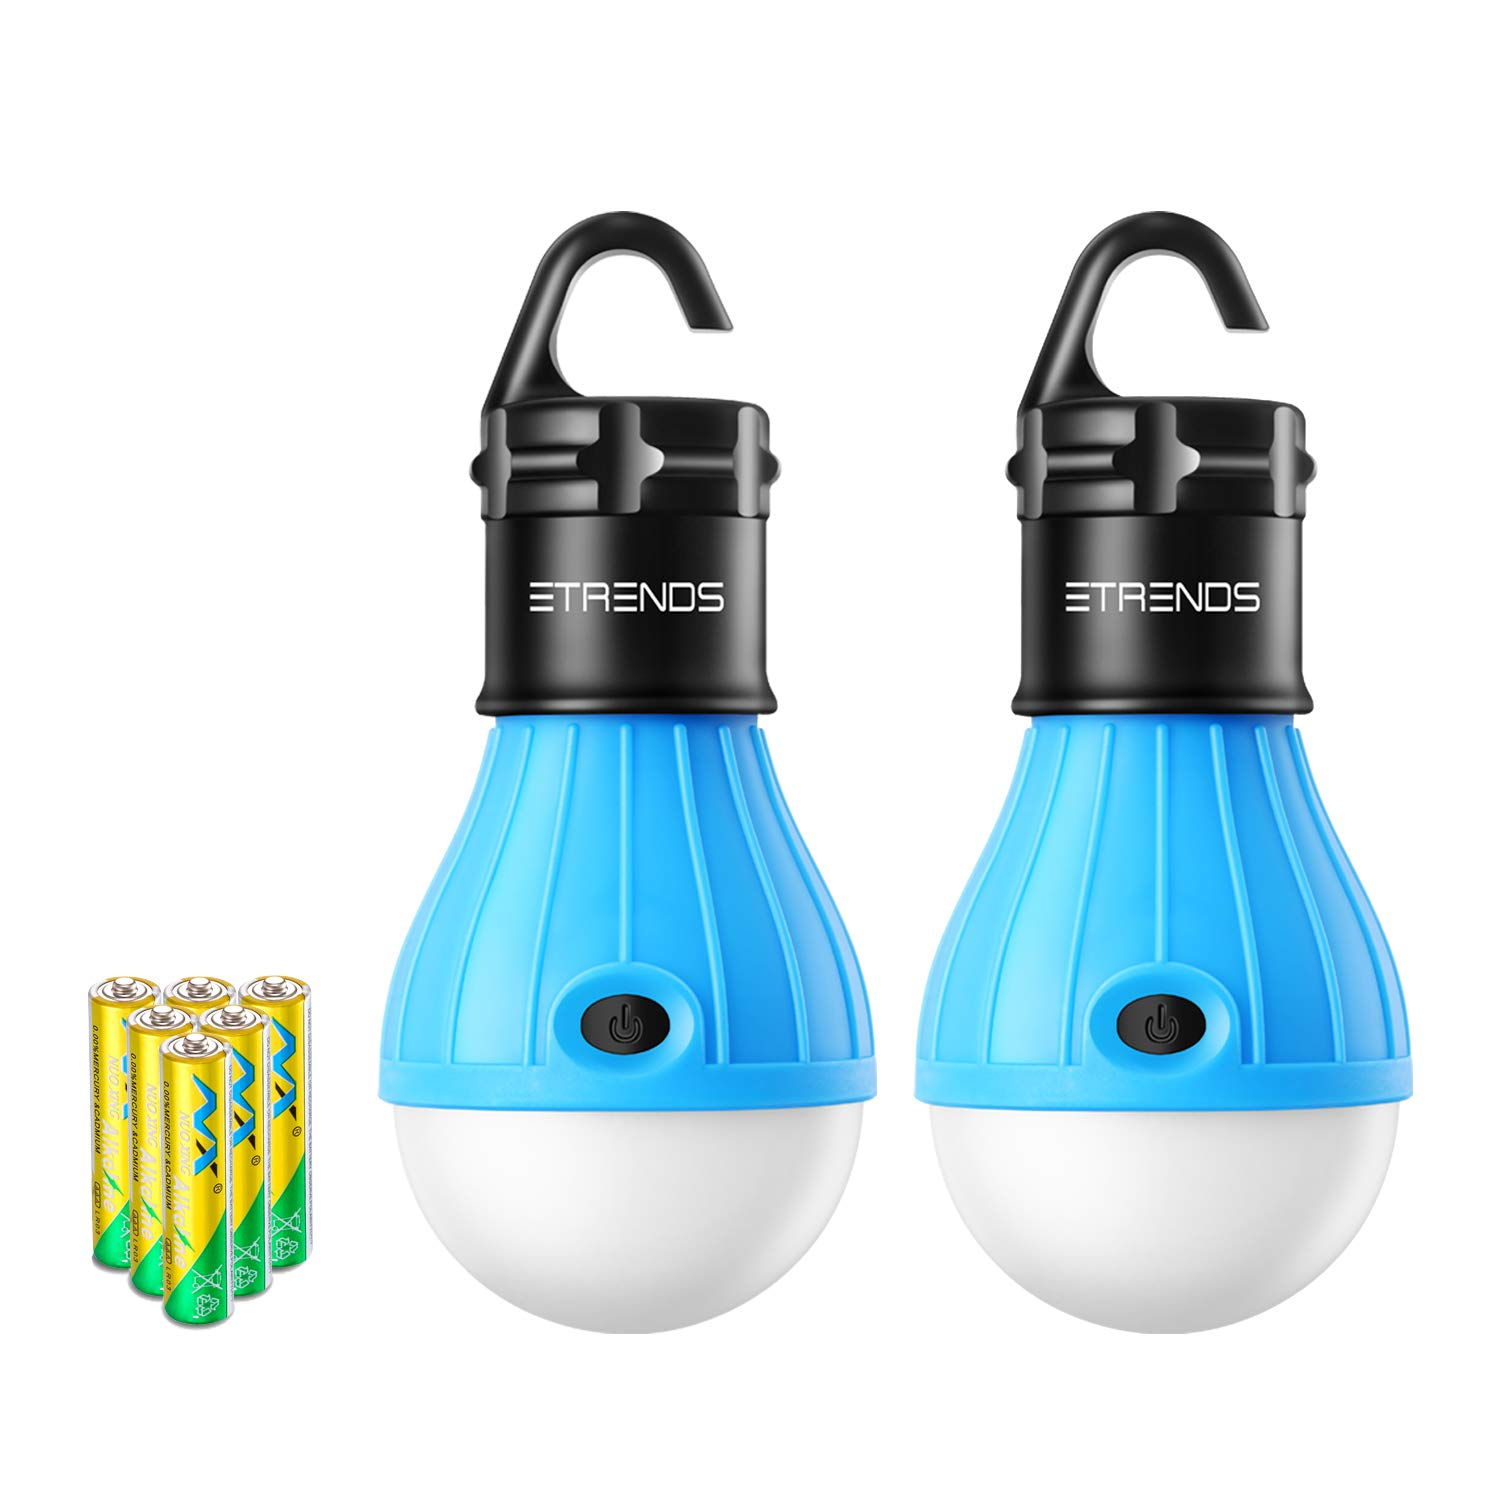 E-TRENDS 2 Pack 4 Pack Compact LED Lantern Tent Camp Light Bulb for Camping Hiking Fishing Emergency Lights, Battery Powered Portable Lamp